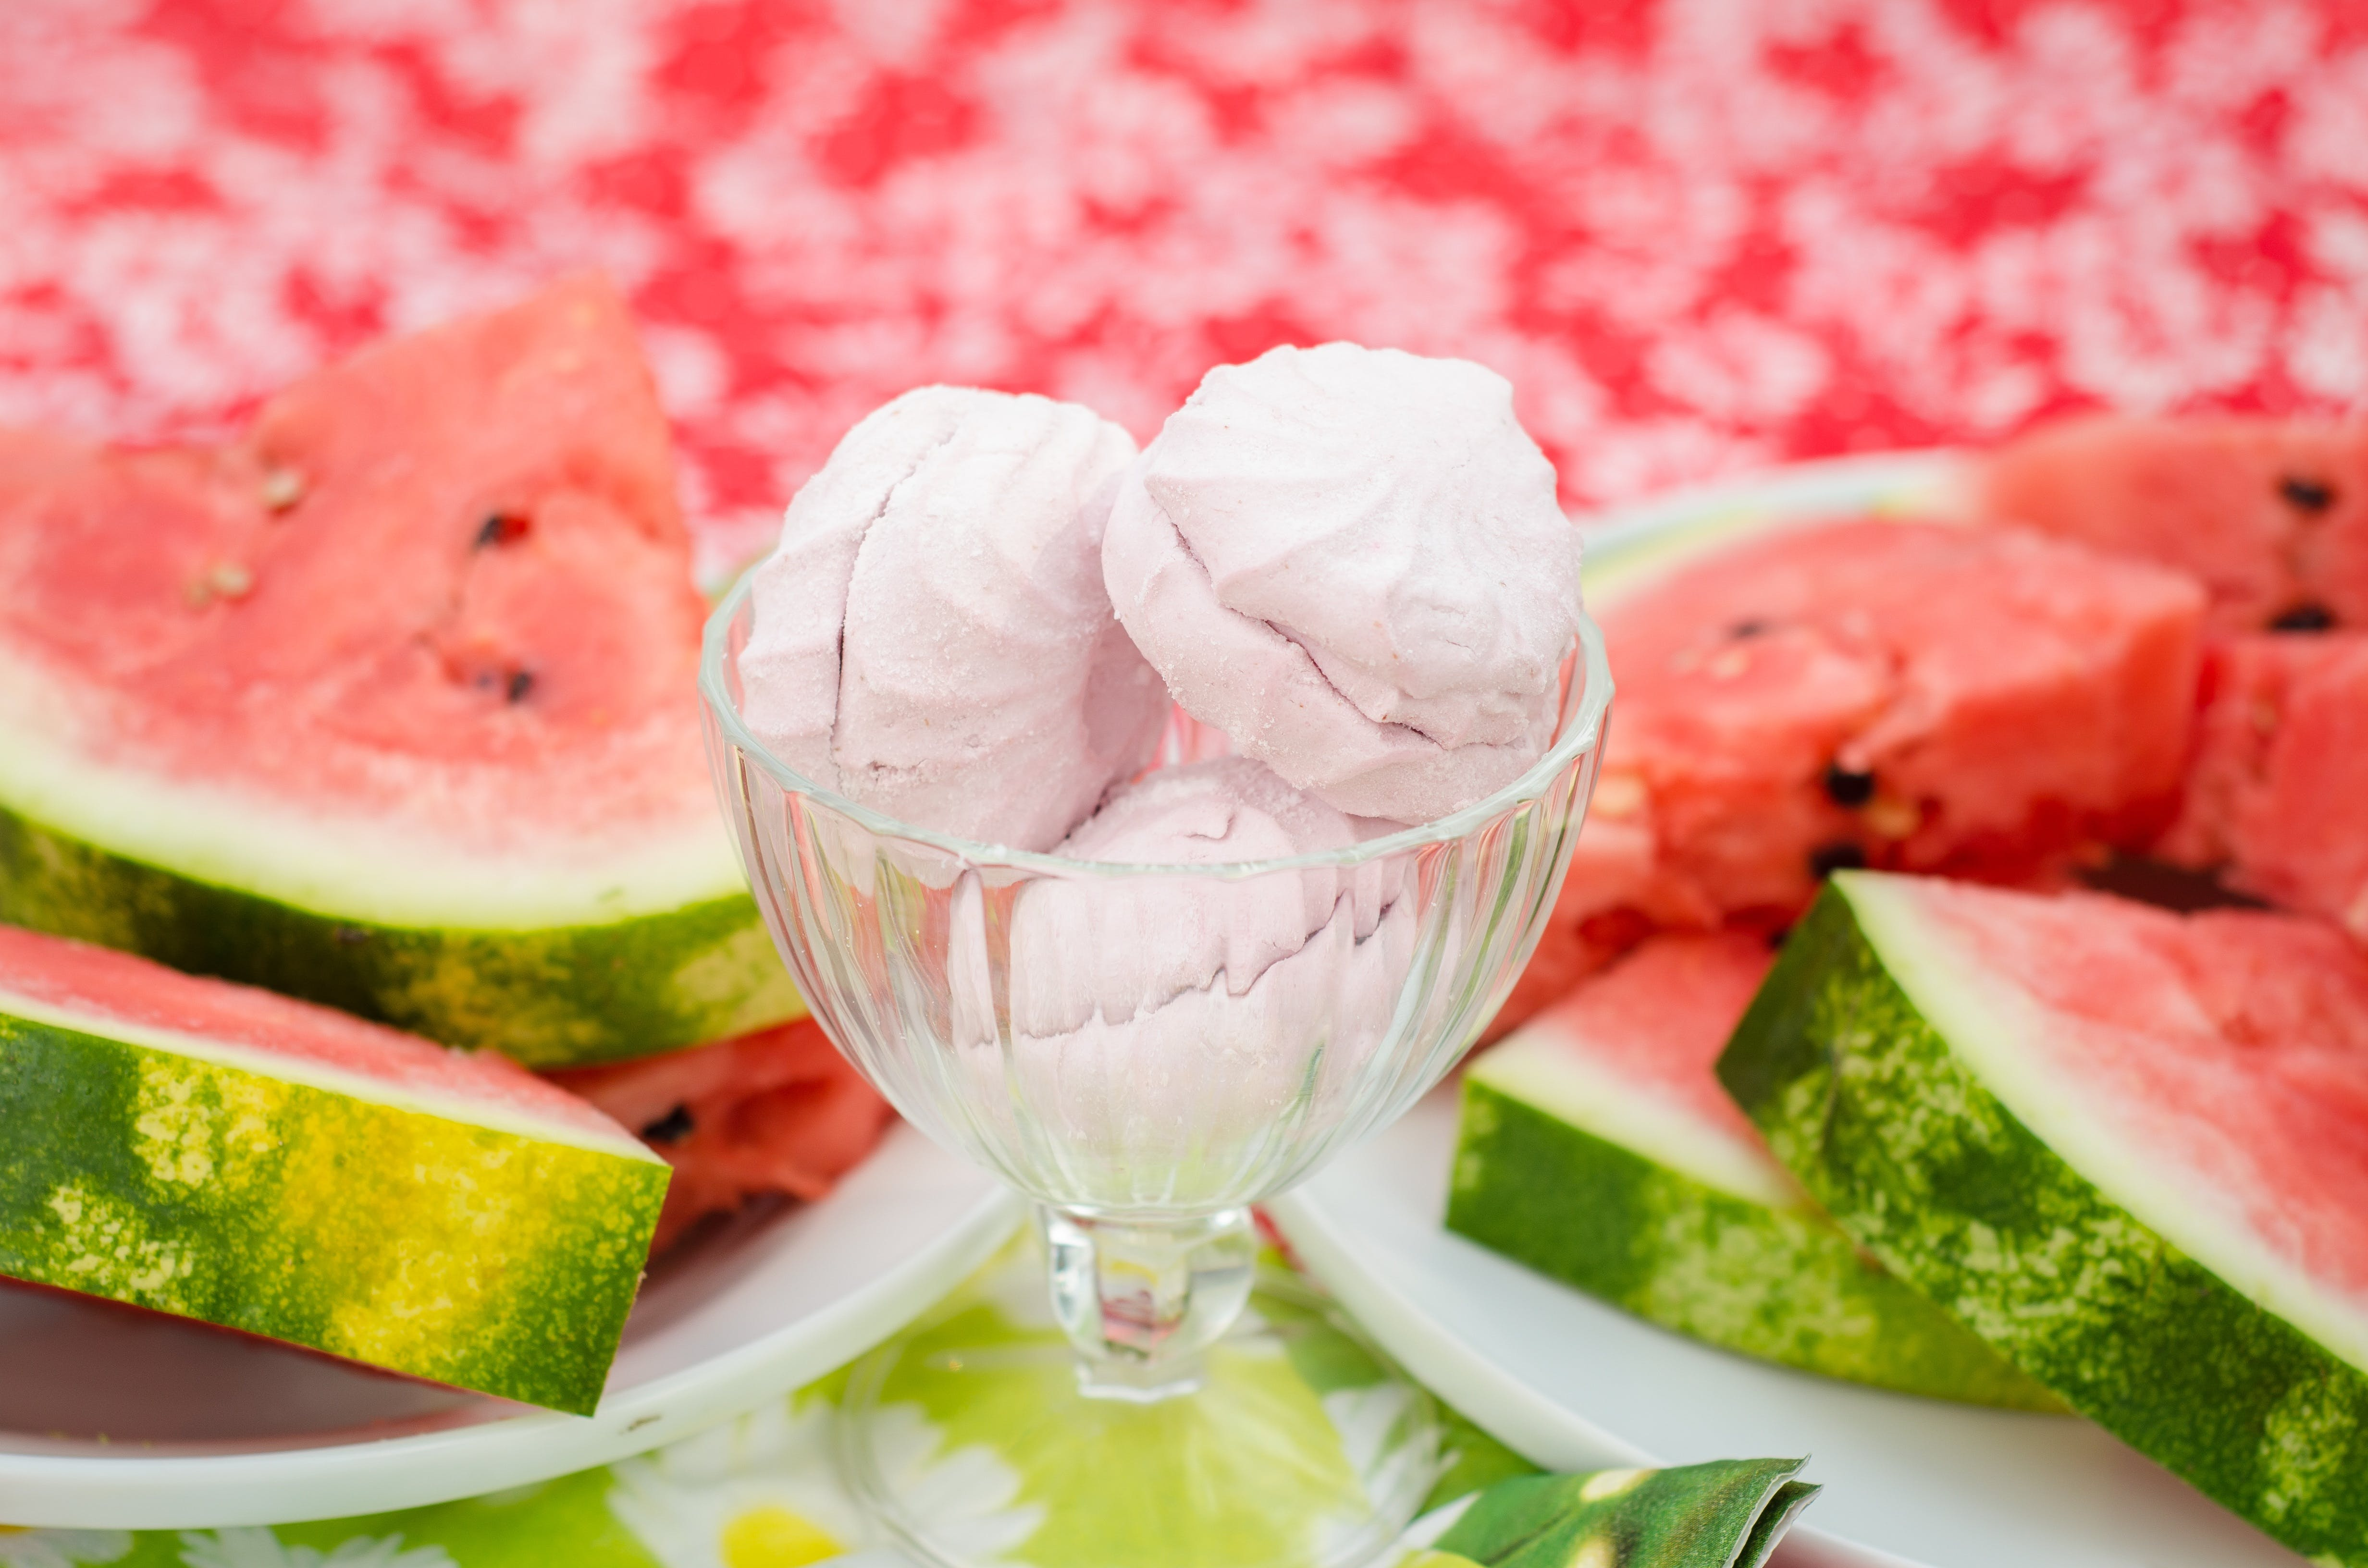 Ice Cream in Glass Cup Beside Sliced Watermelons